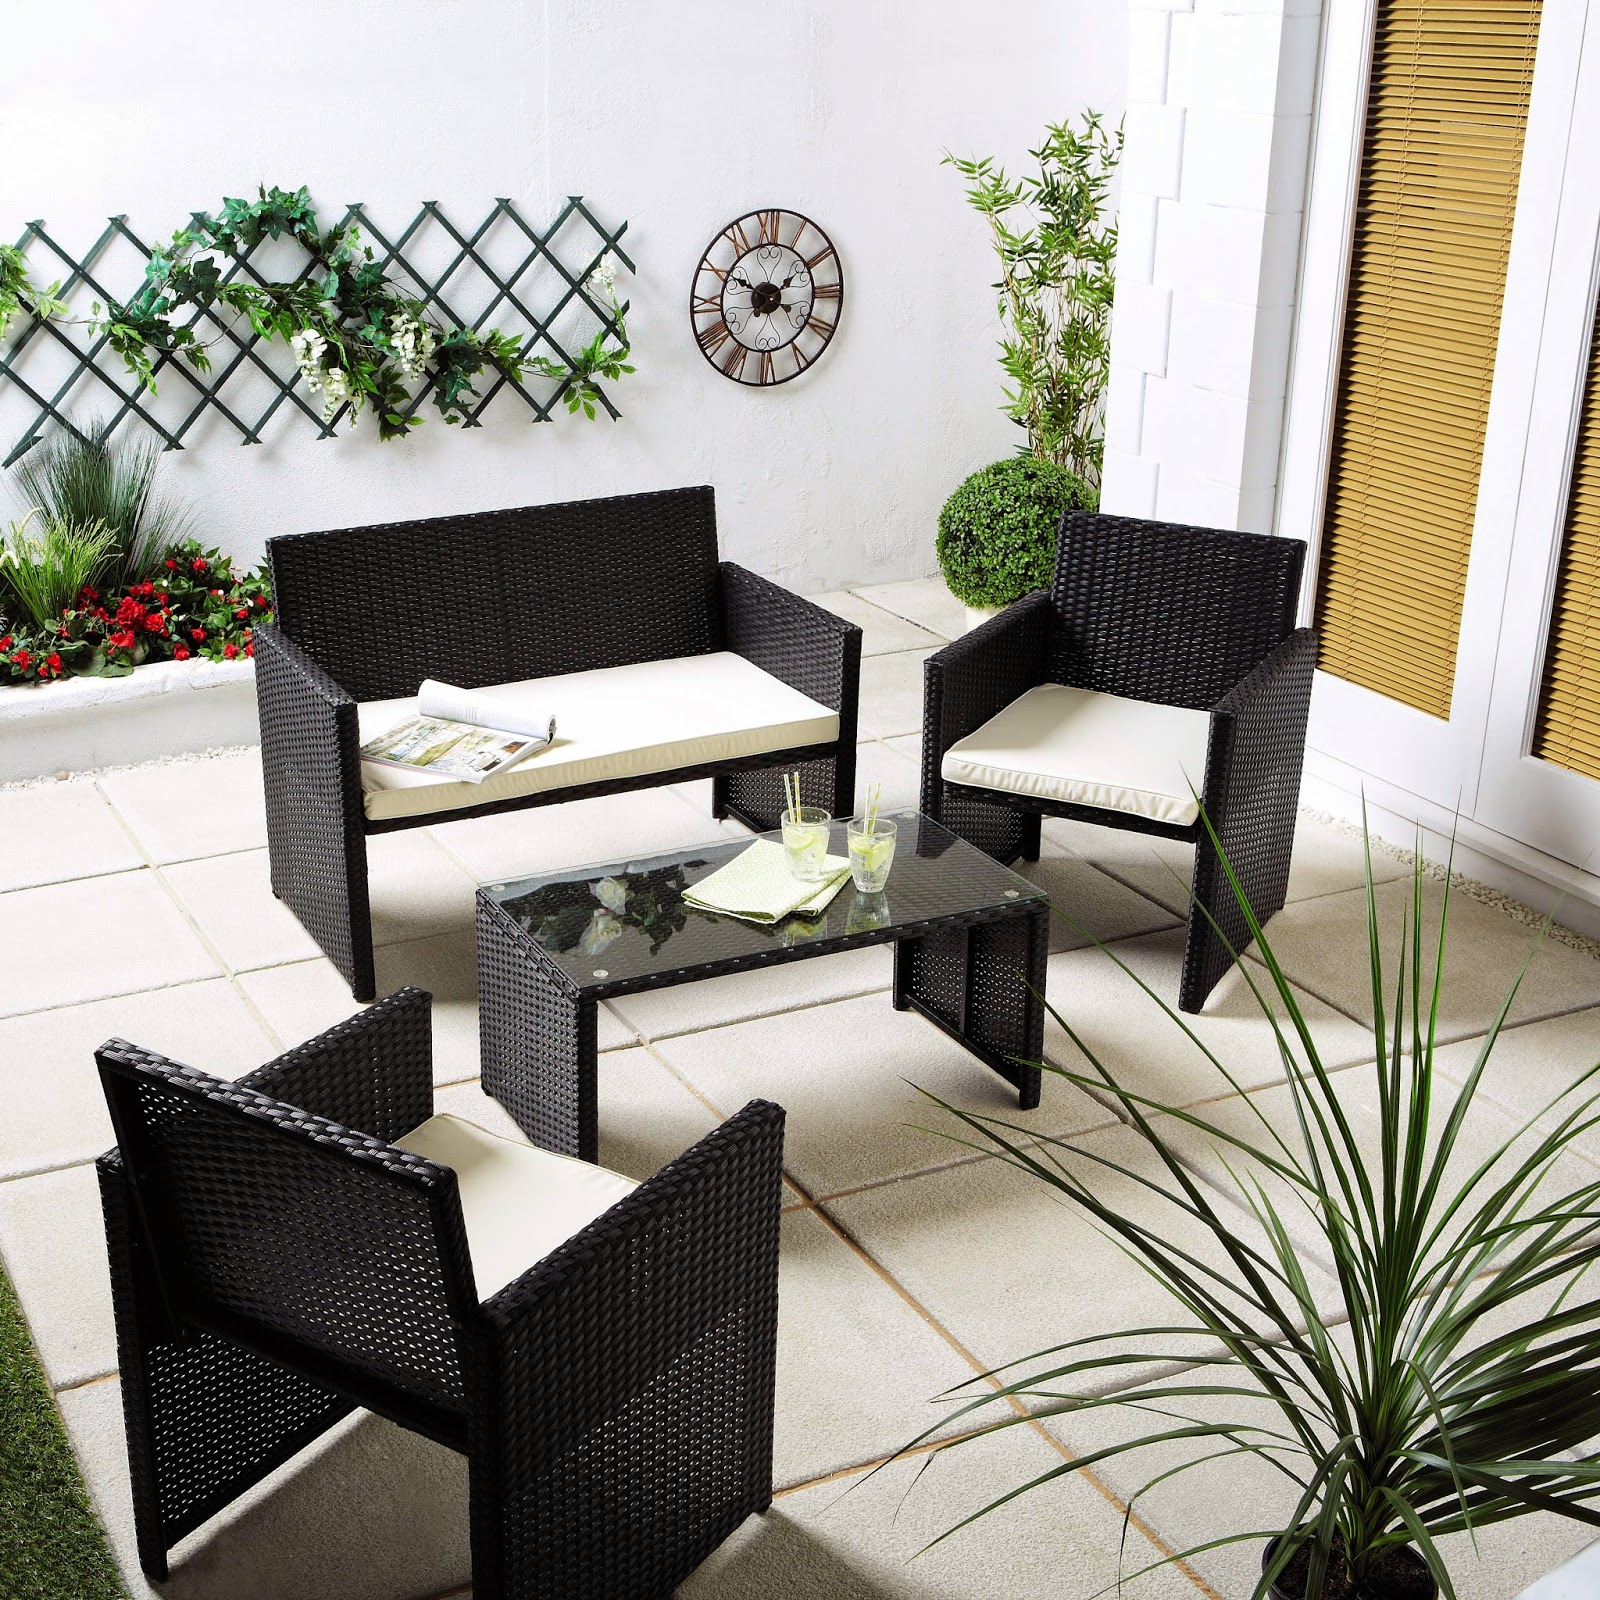 Rattan Furniture Set Only £150 From Aldi